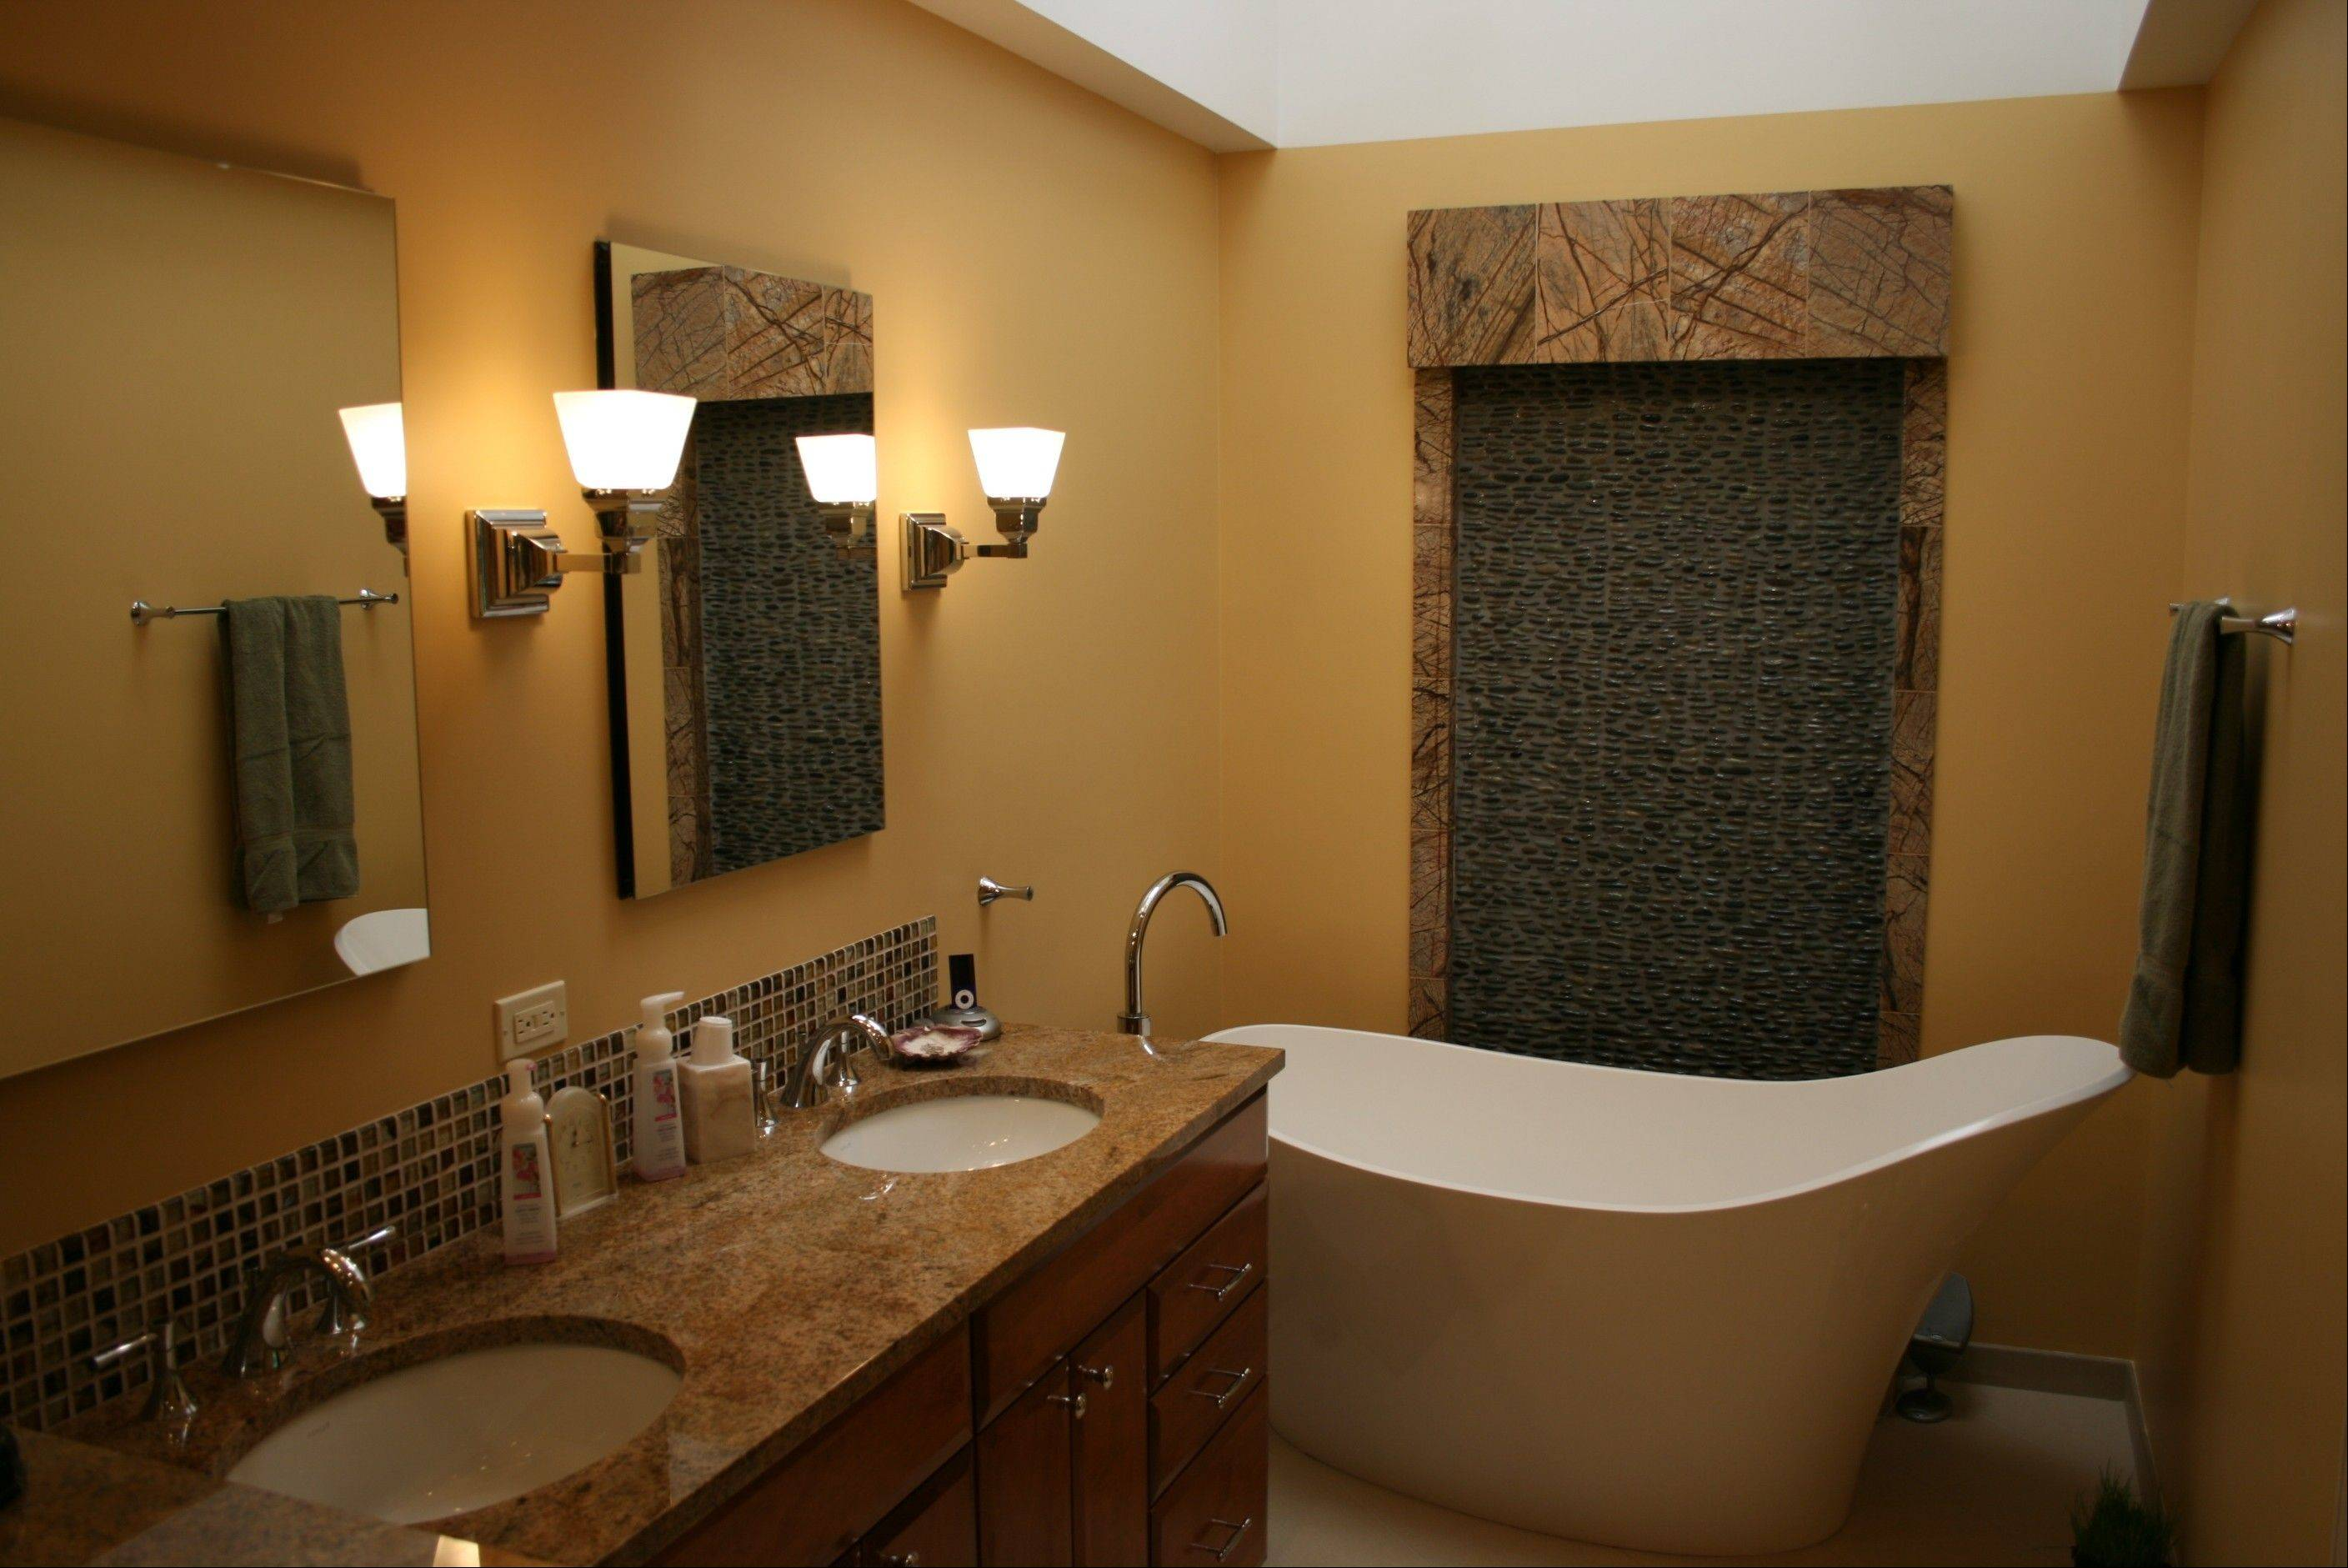 Soaking tubs in the modern home have replaced oversized whirlpools.